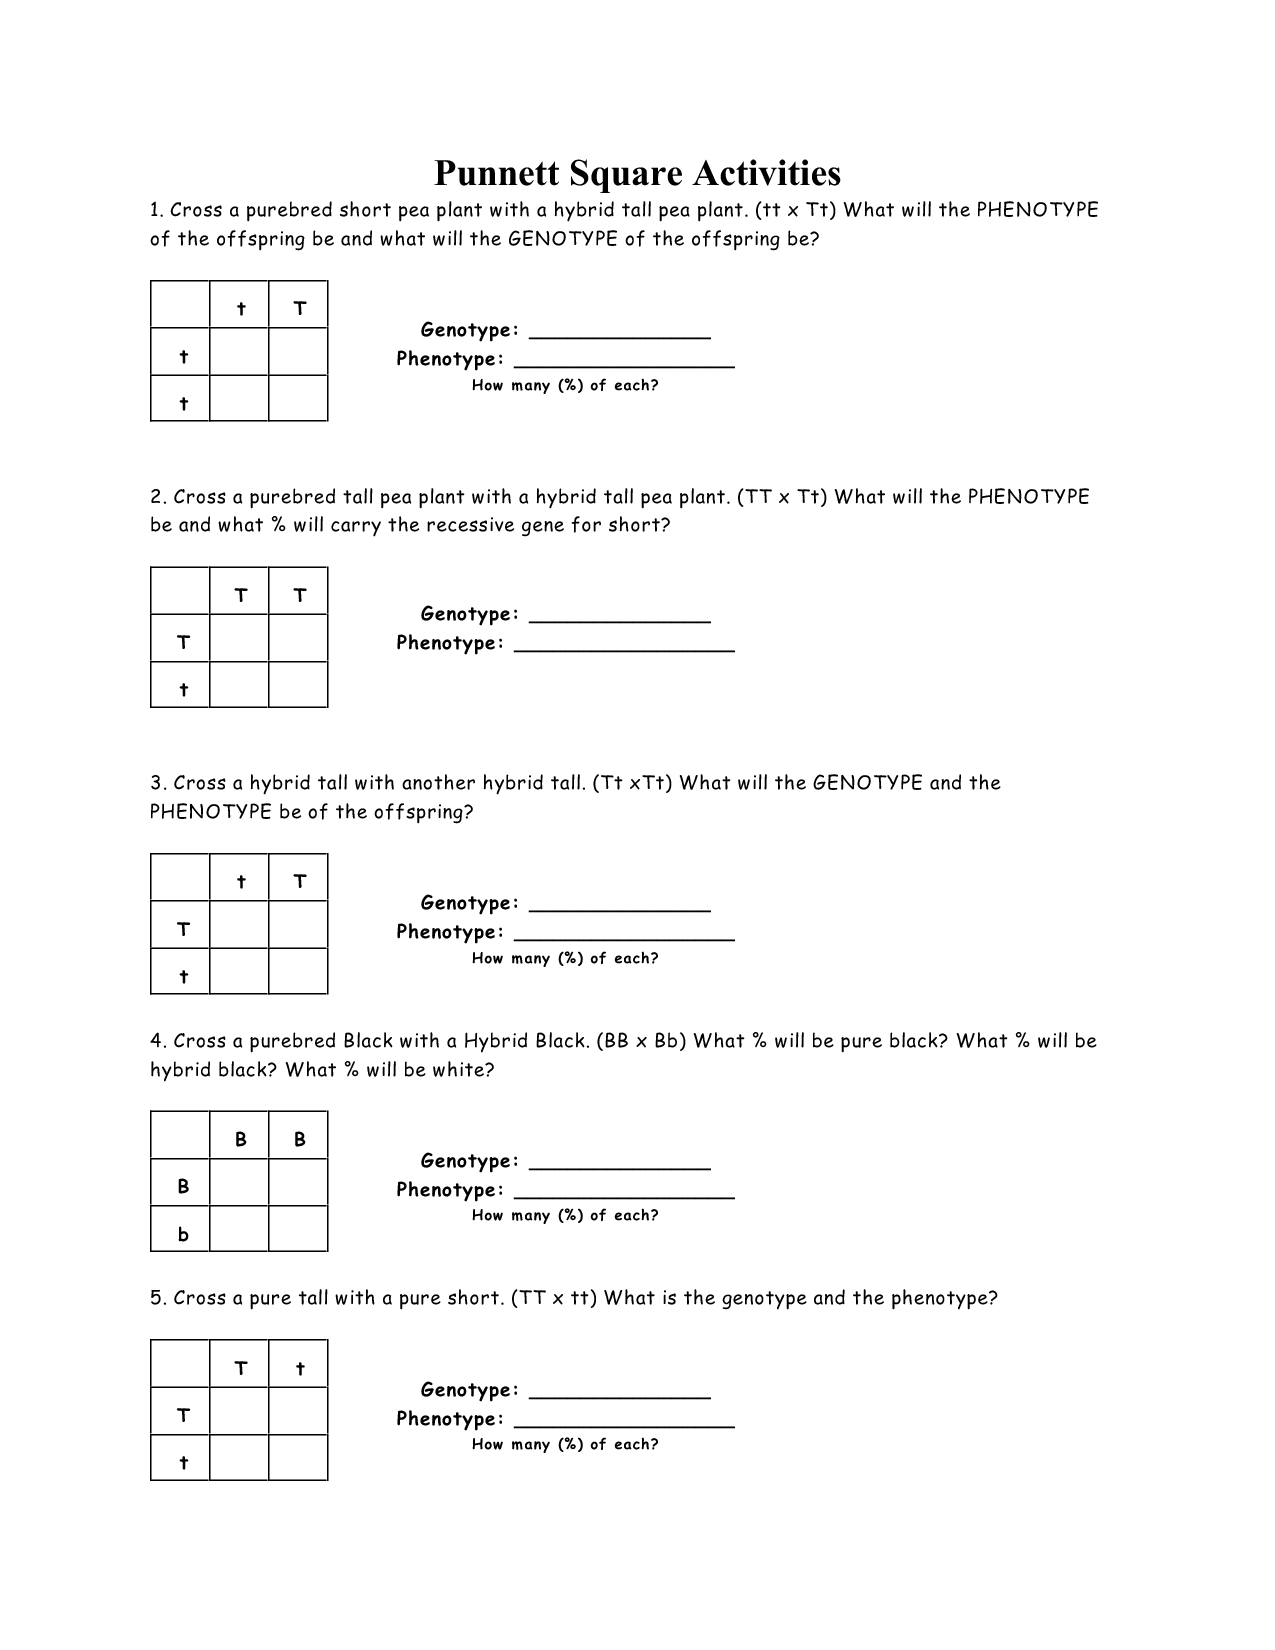 Pea Plant Punnett Square Worksheet Answers in 2020 ...